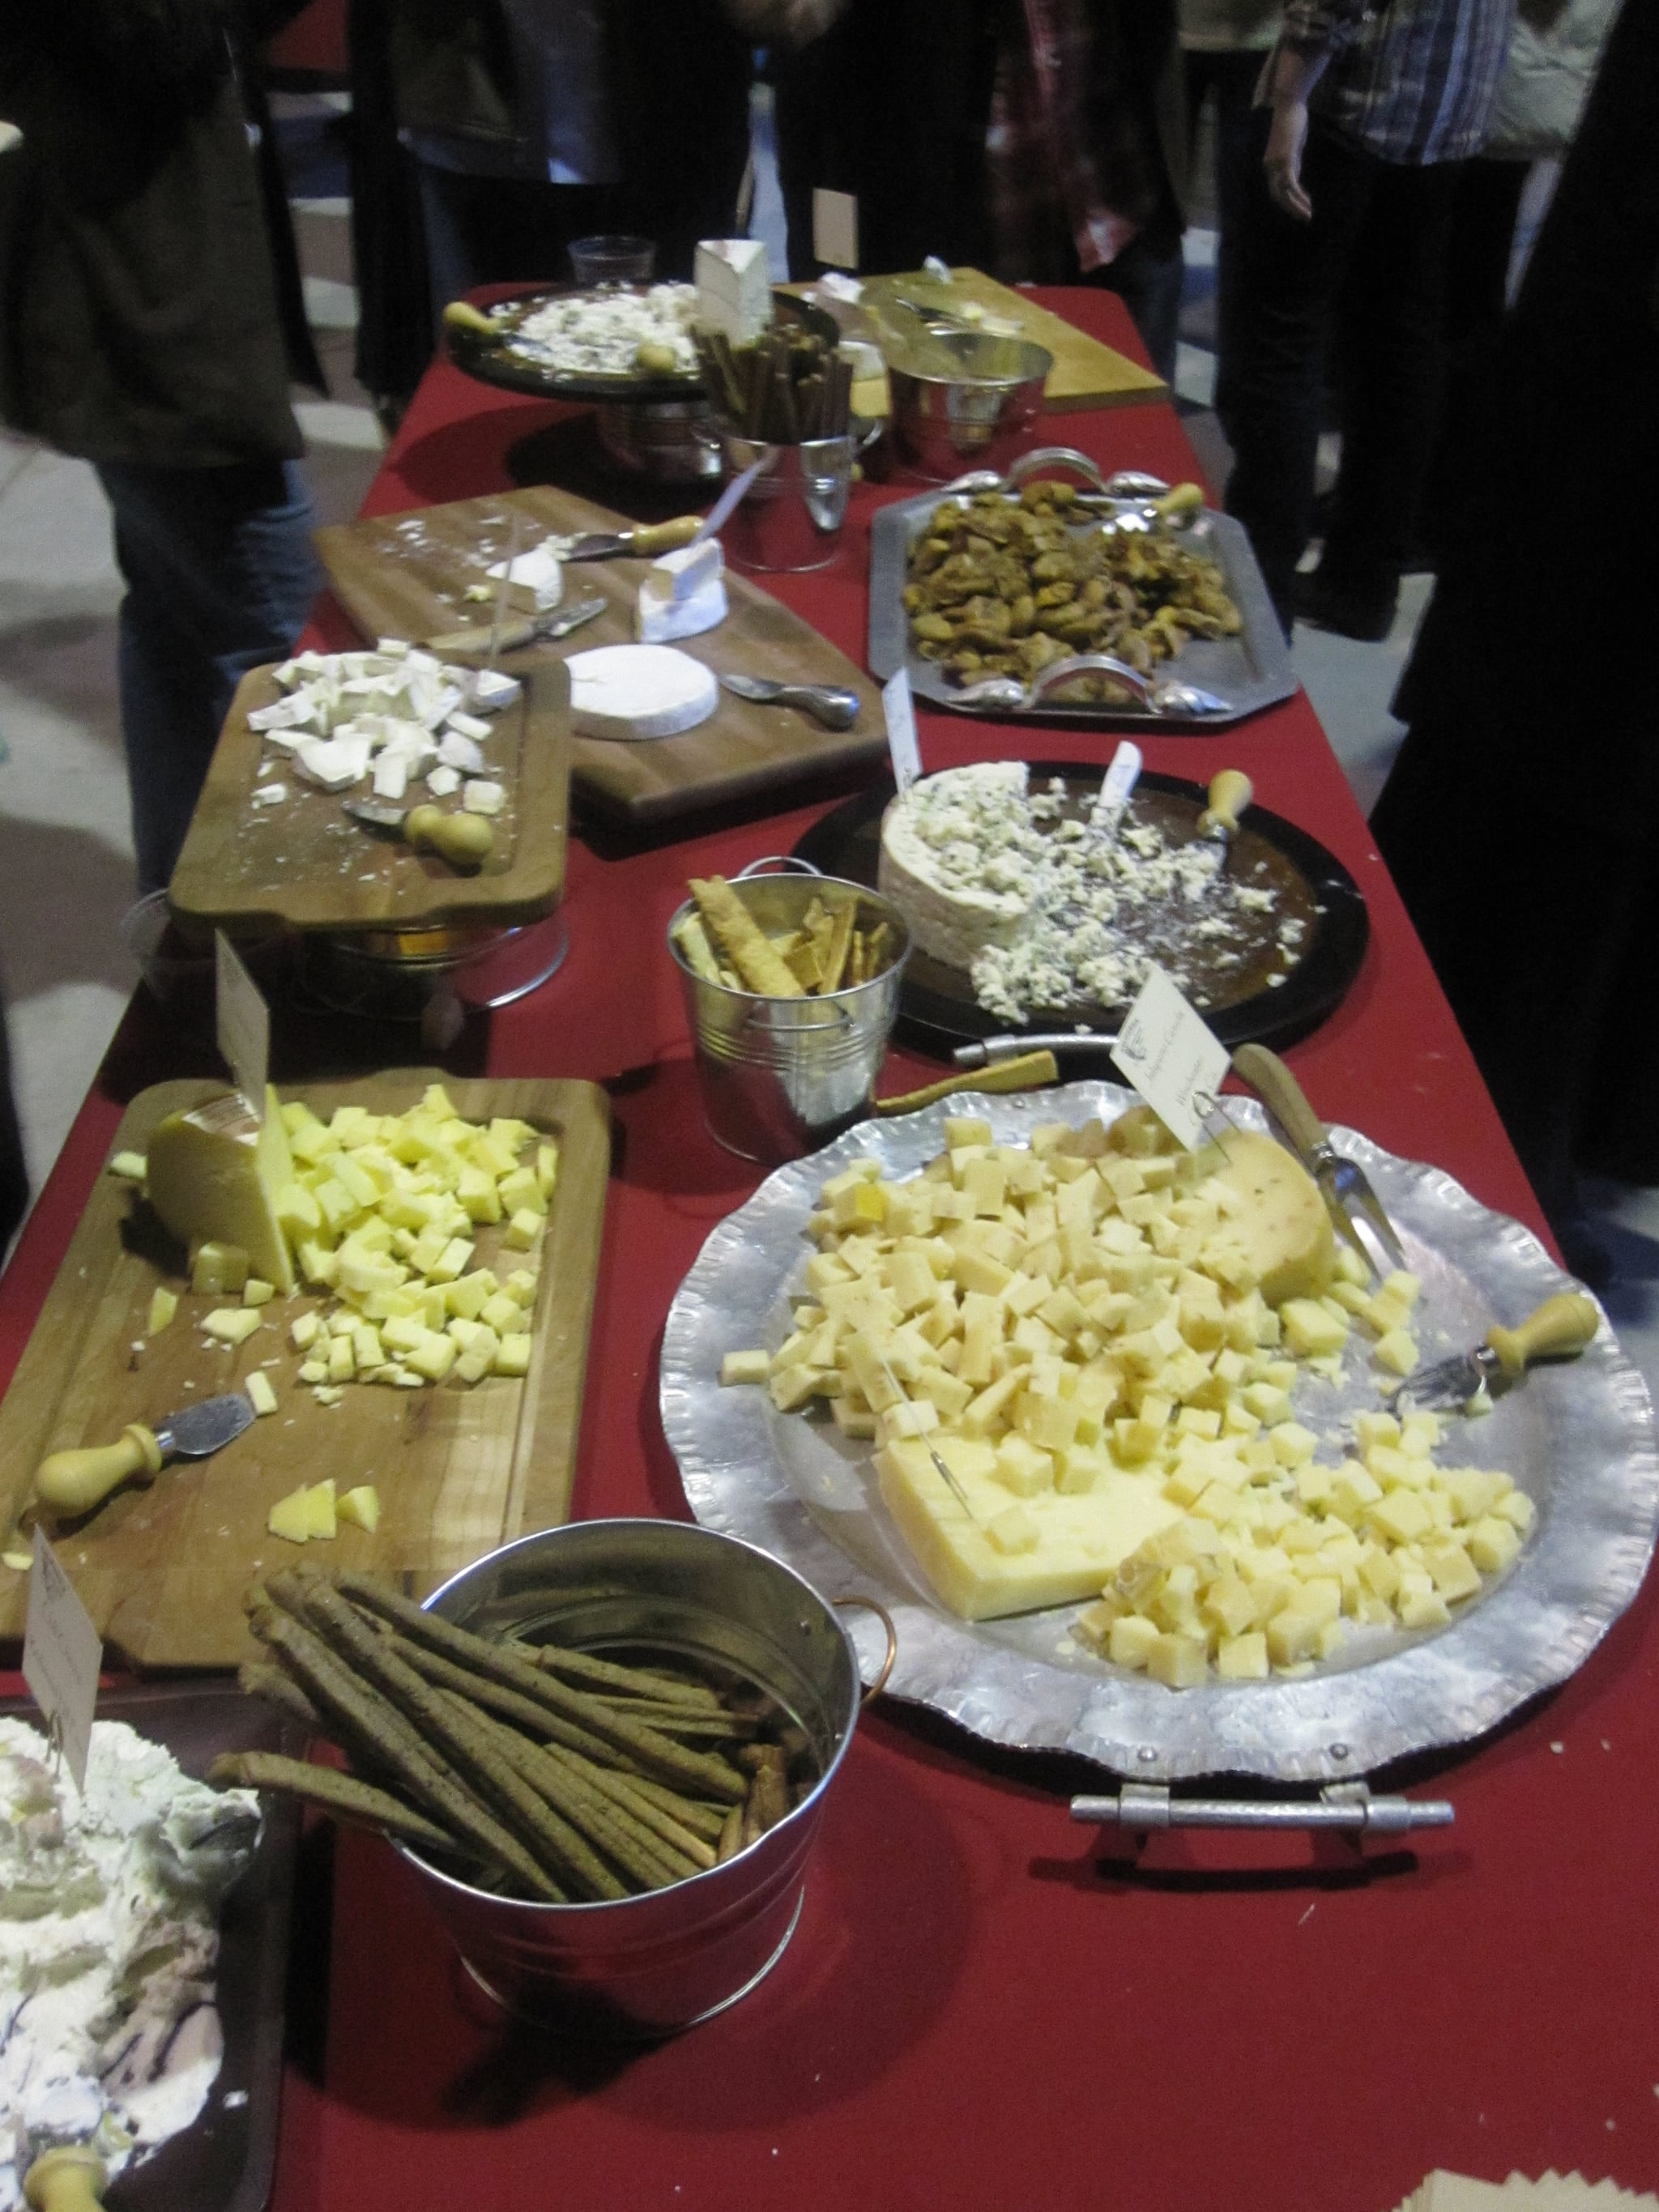 The cheese display!